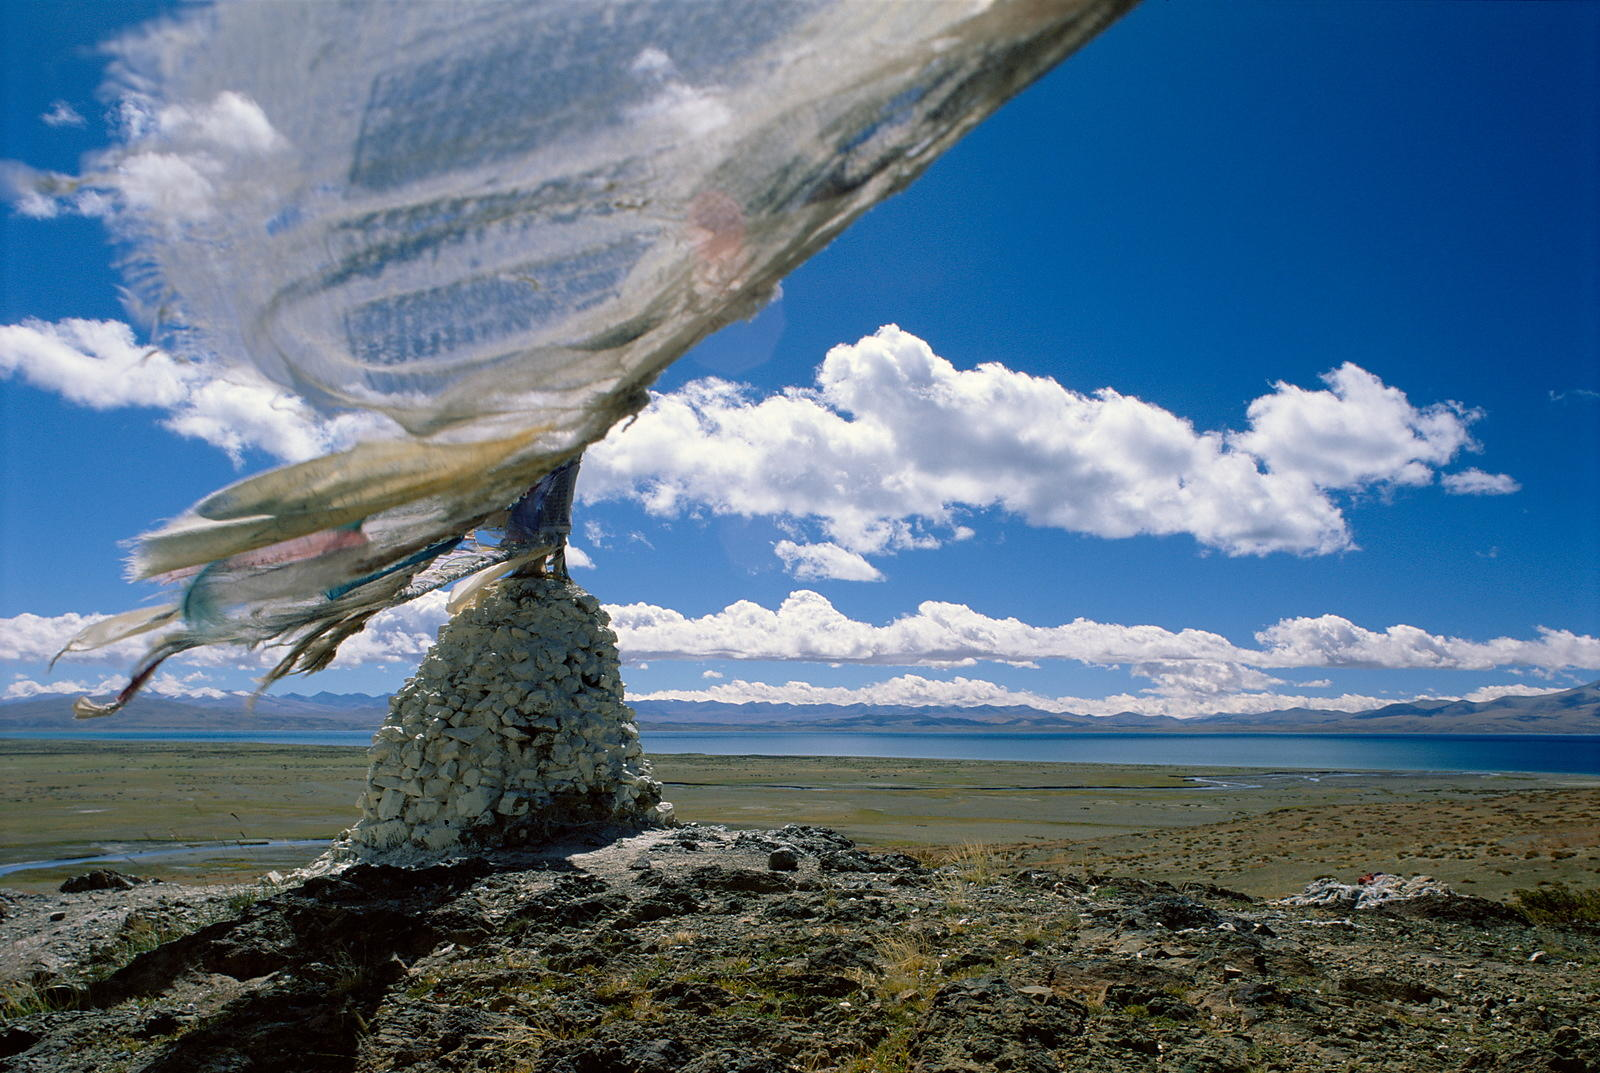 Chorten, prayer flags and Lake Manasarovar